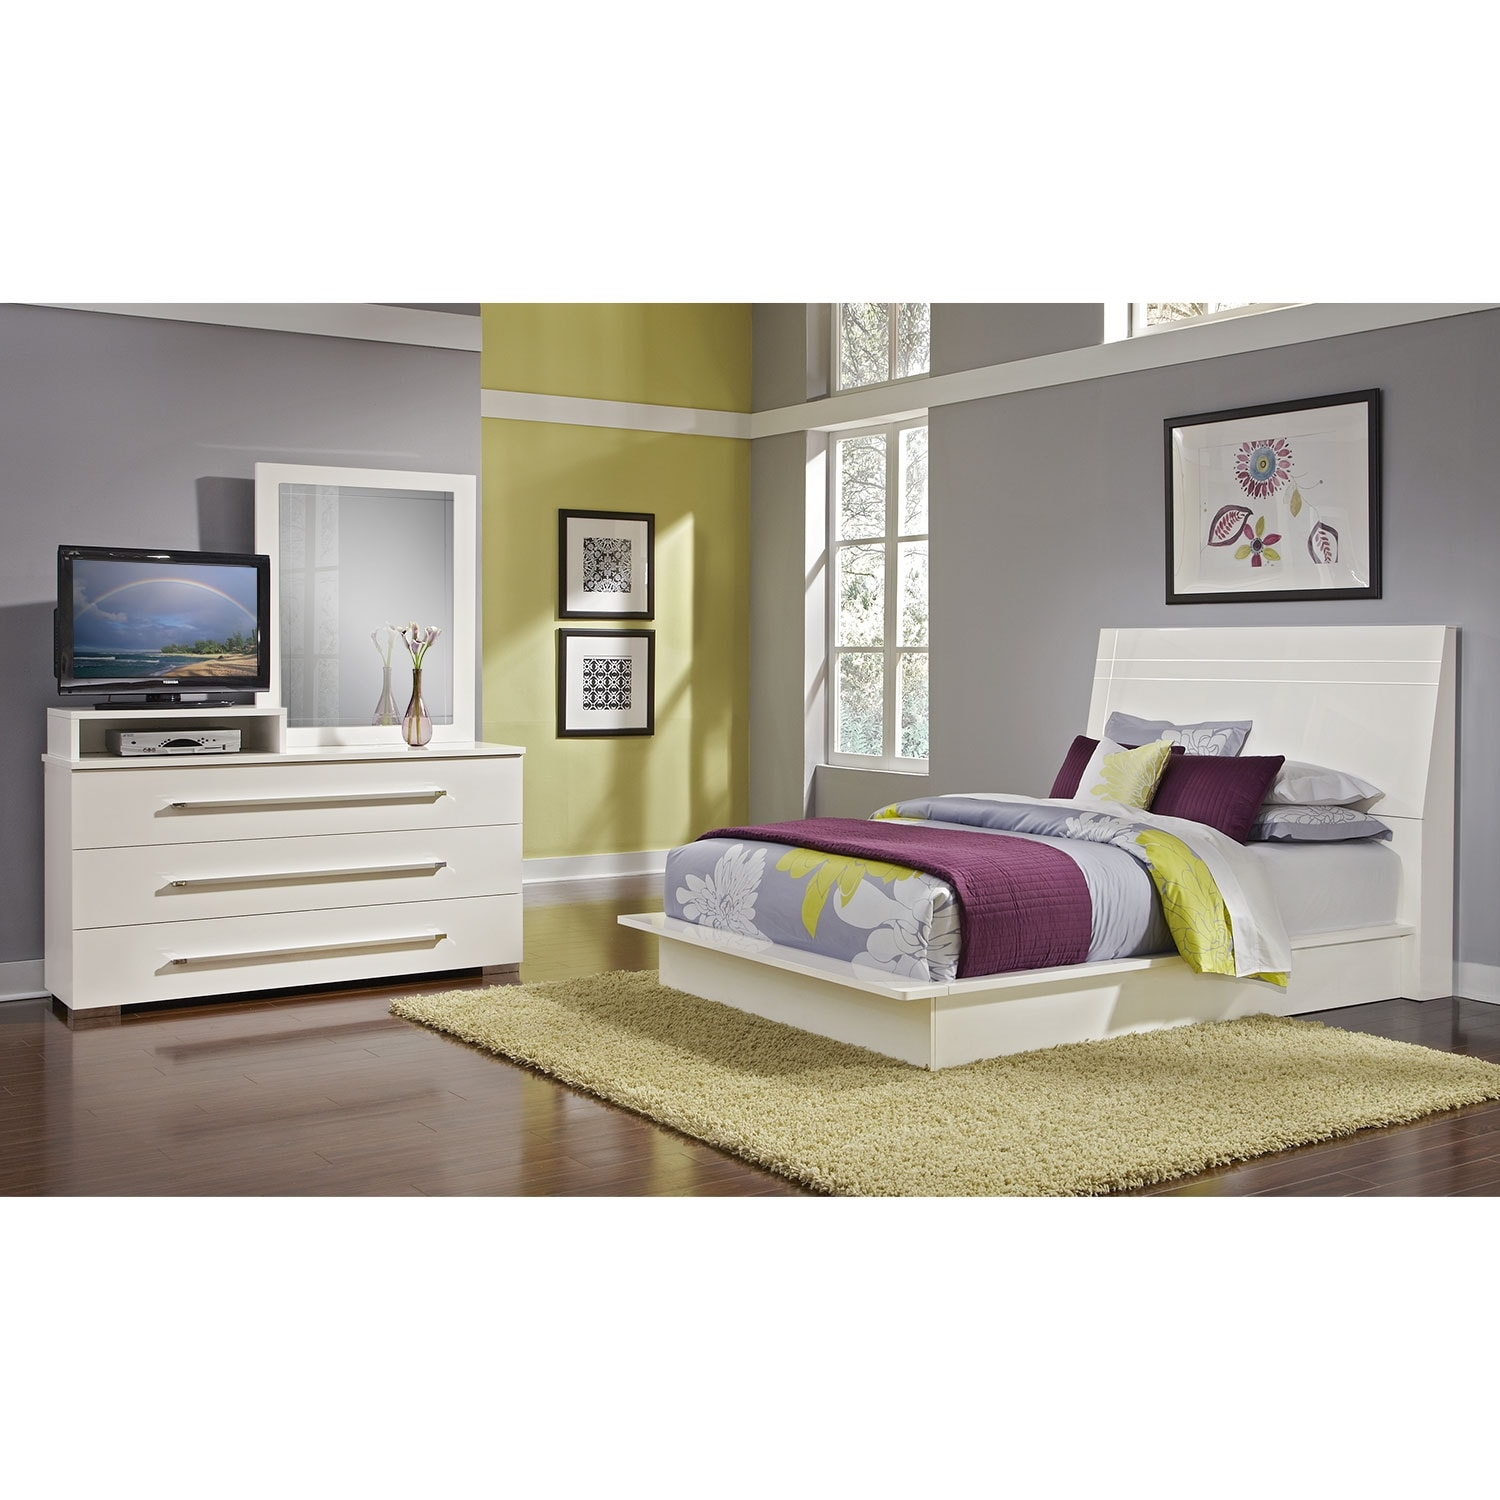 Dimora 5-Piece Queen Panel Bedroom Set with Media Dresser - White